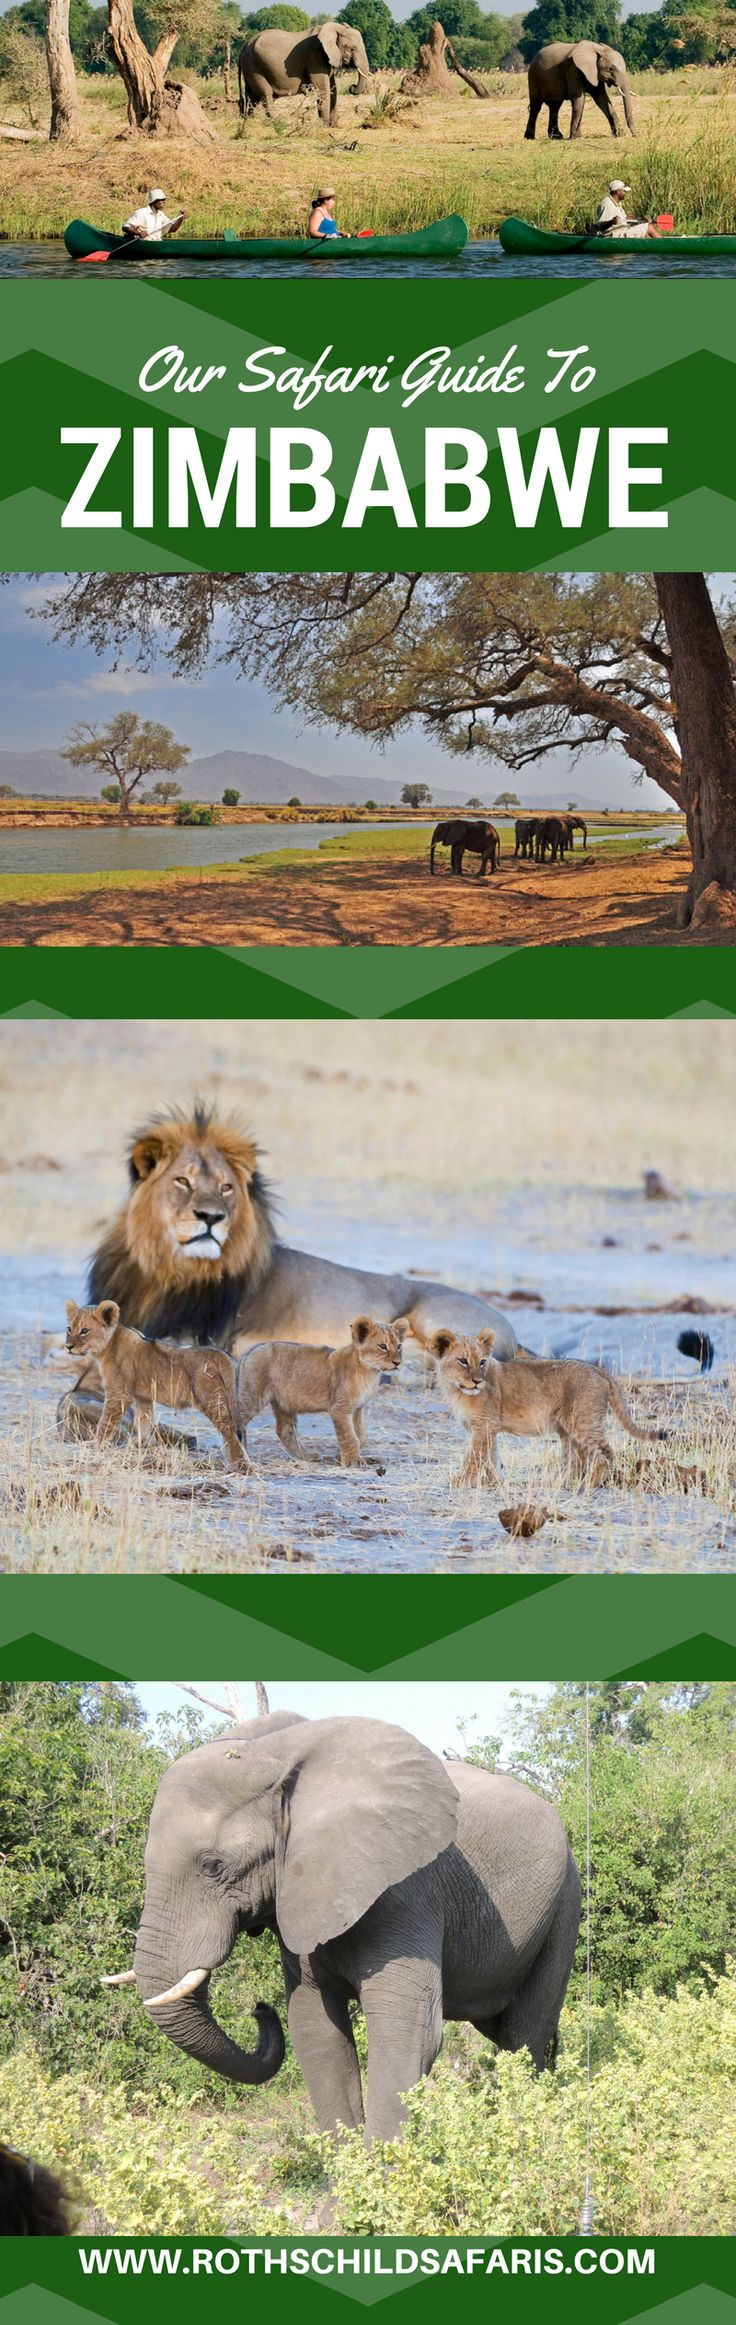 Here are few good reason why you need to consider #Zimbabwe for for you next (truly wild!) African safari.